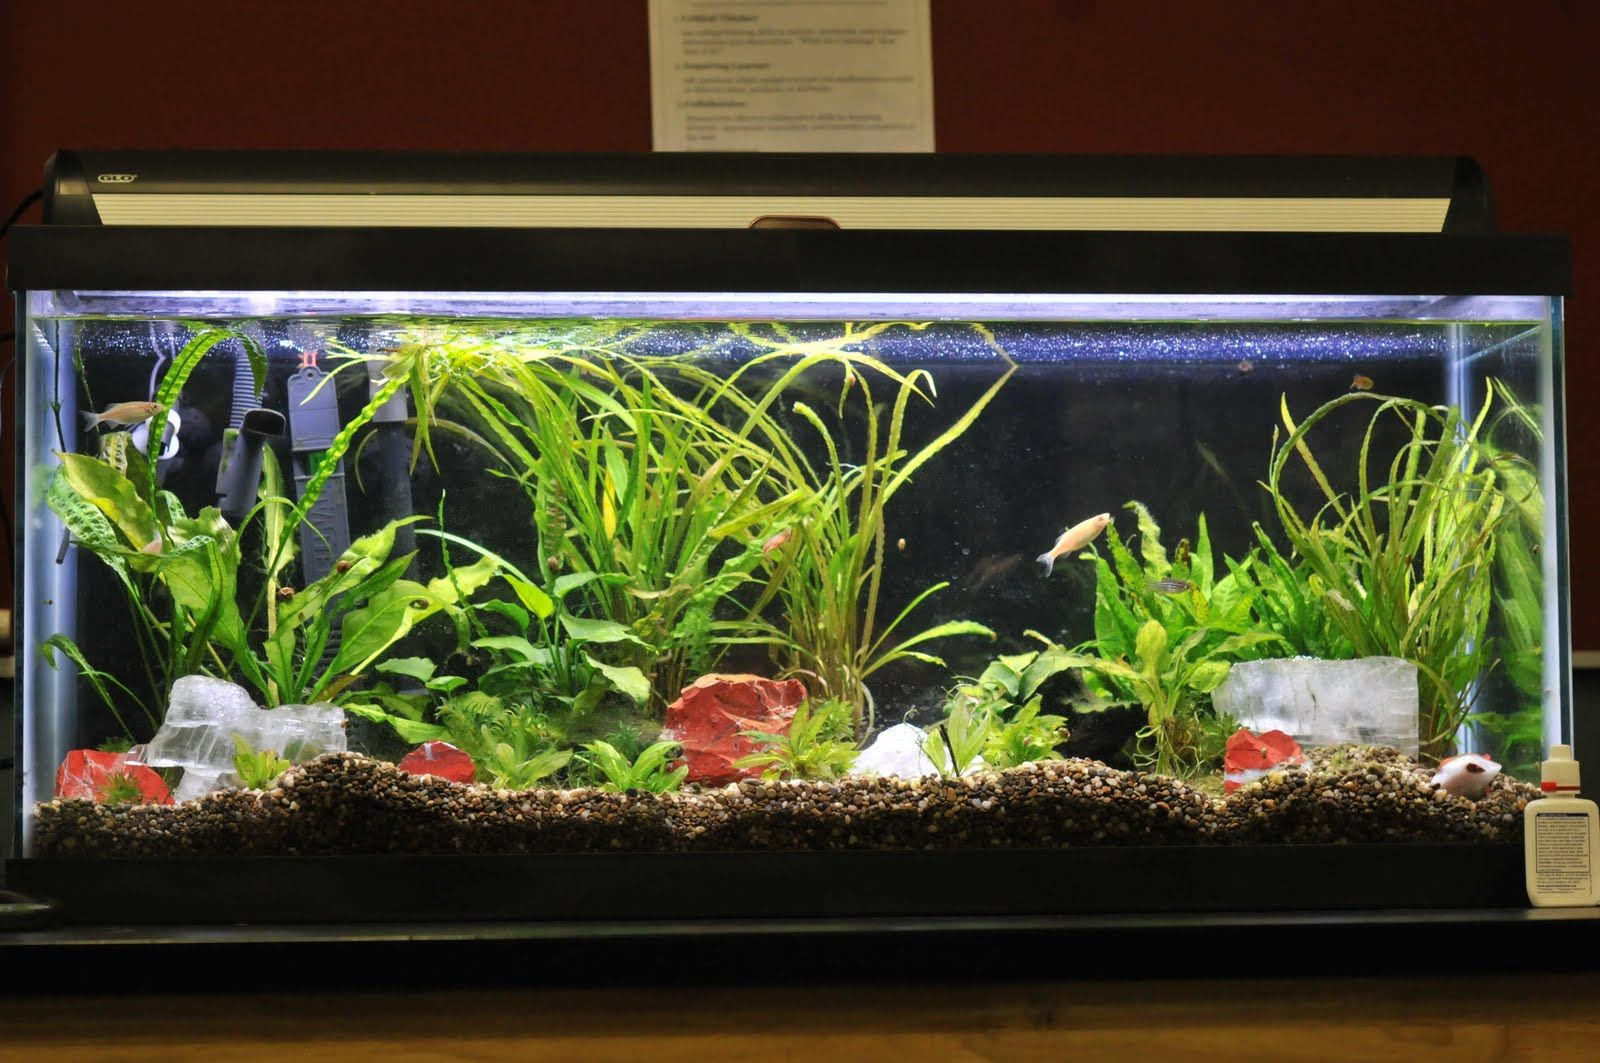 14 Splendid Diy Aquarium Furniture Ideas To Beautify Your Home Diy Aquarium Aquarium Design Diy Aquarium Stand